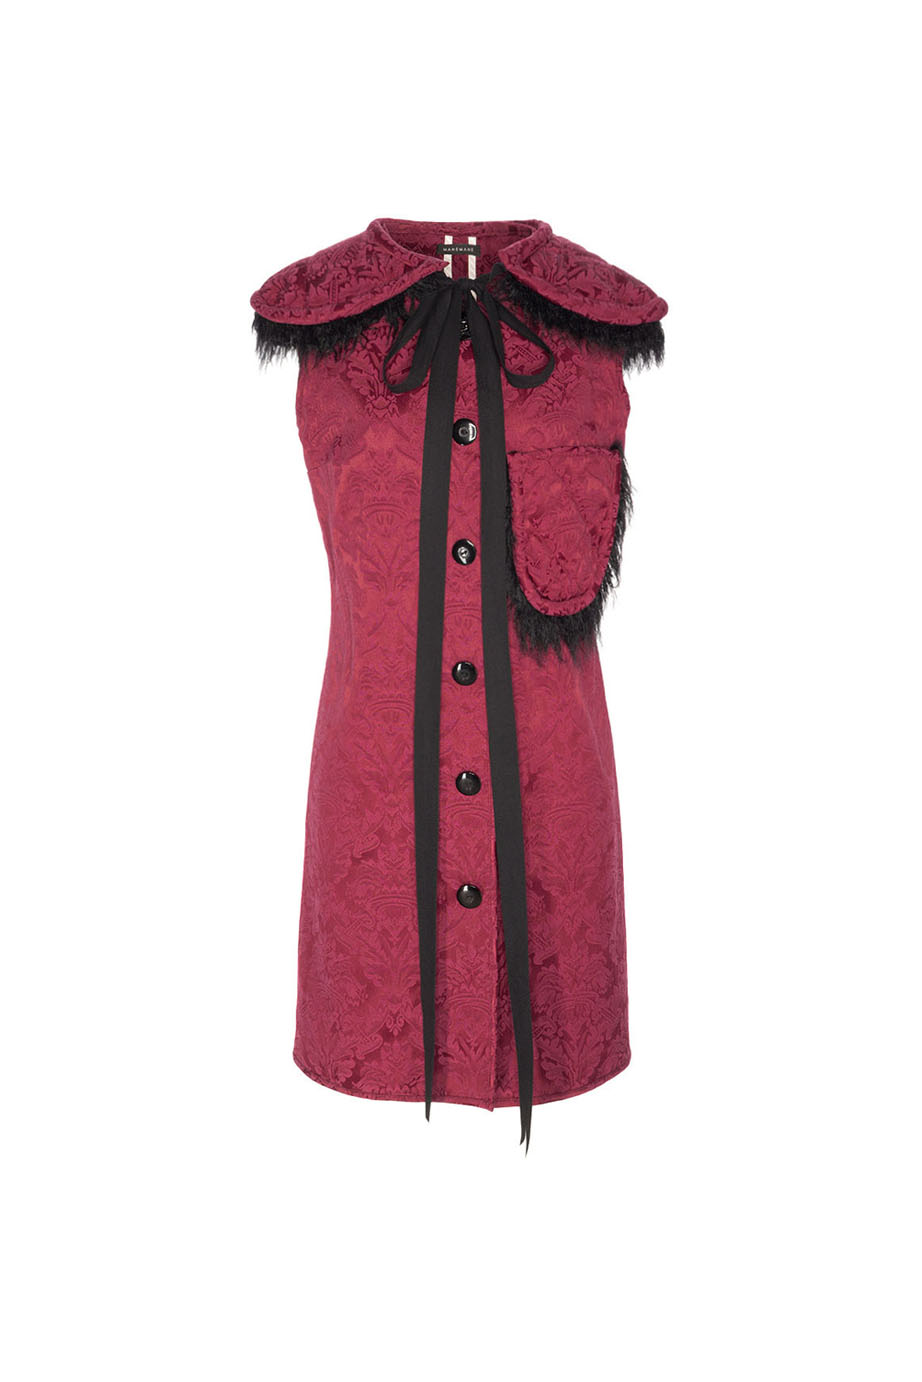 01. MANEMANE CARDINAL DAMASK MINI DRESS